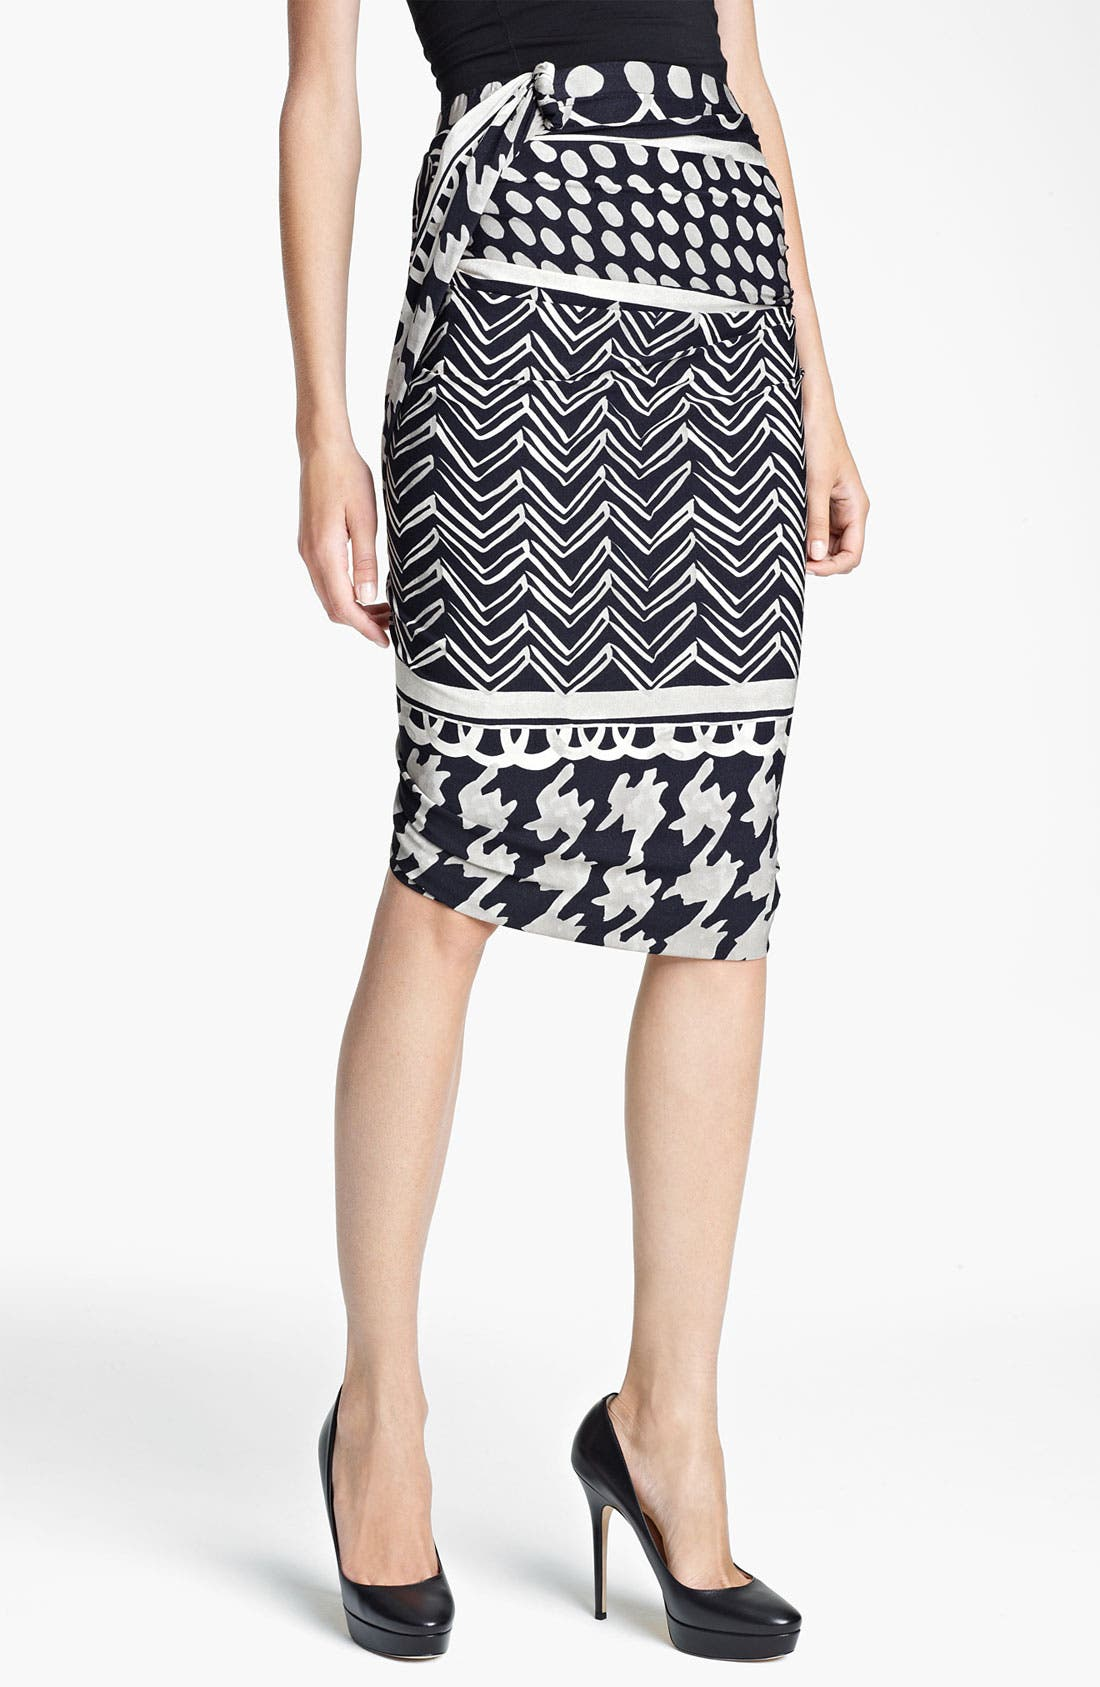 Alternate Image 1 Selected - Max Mara 'Ombrato' Print Jersey Tulip Skirt